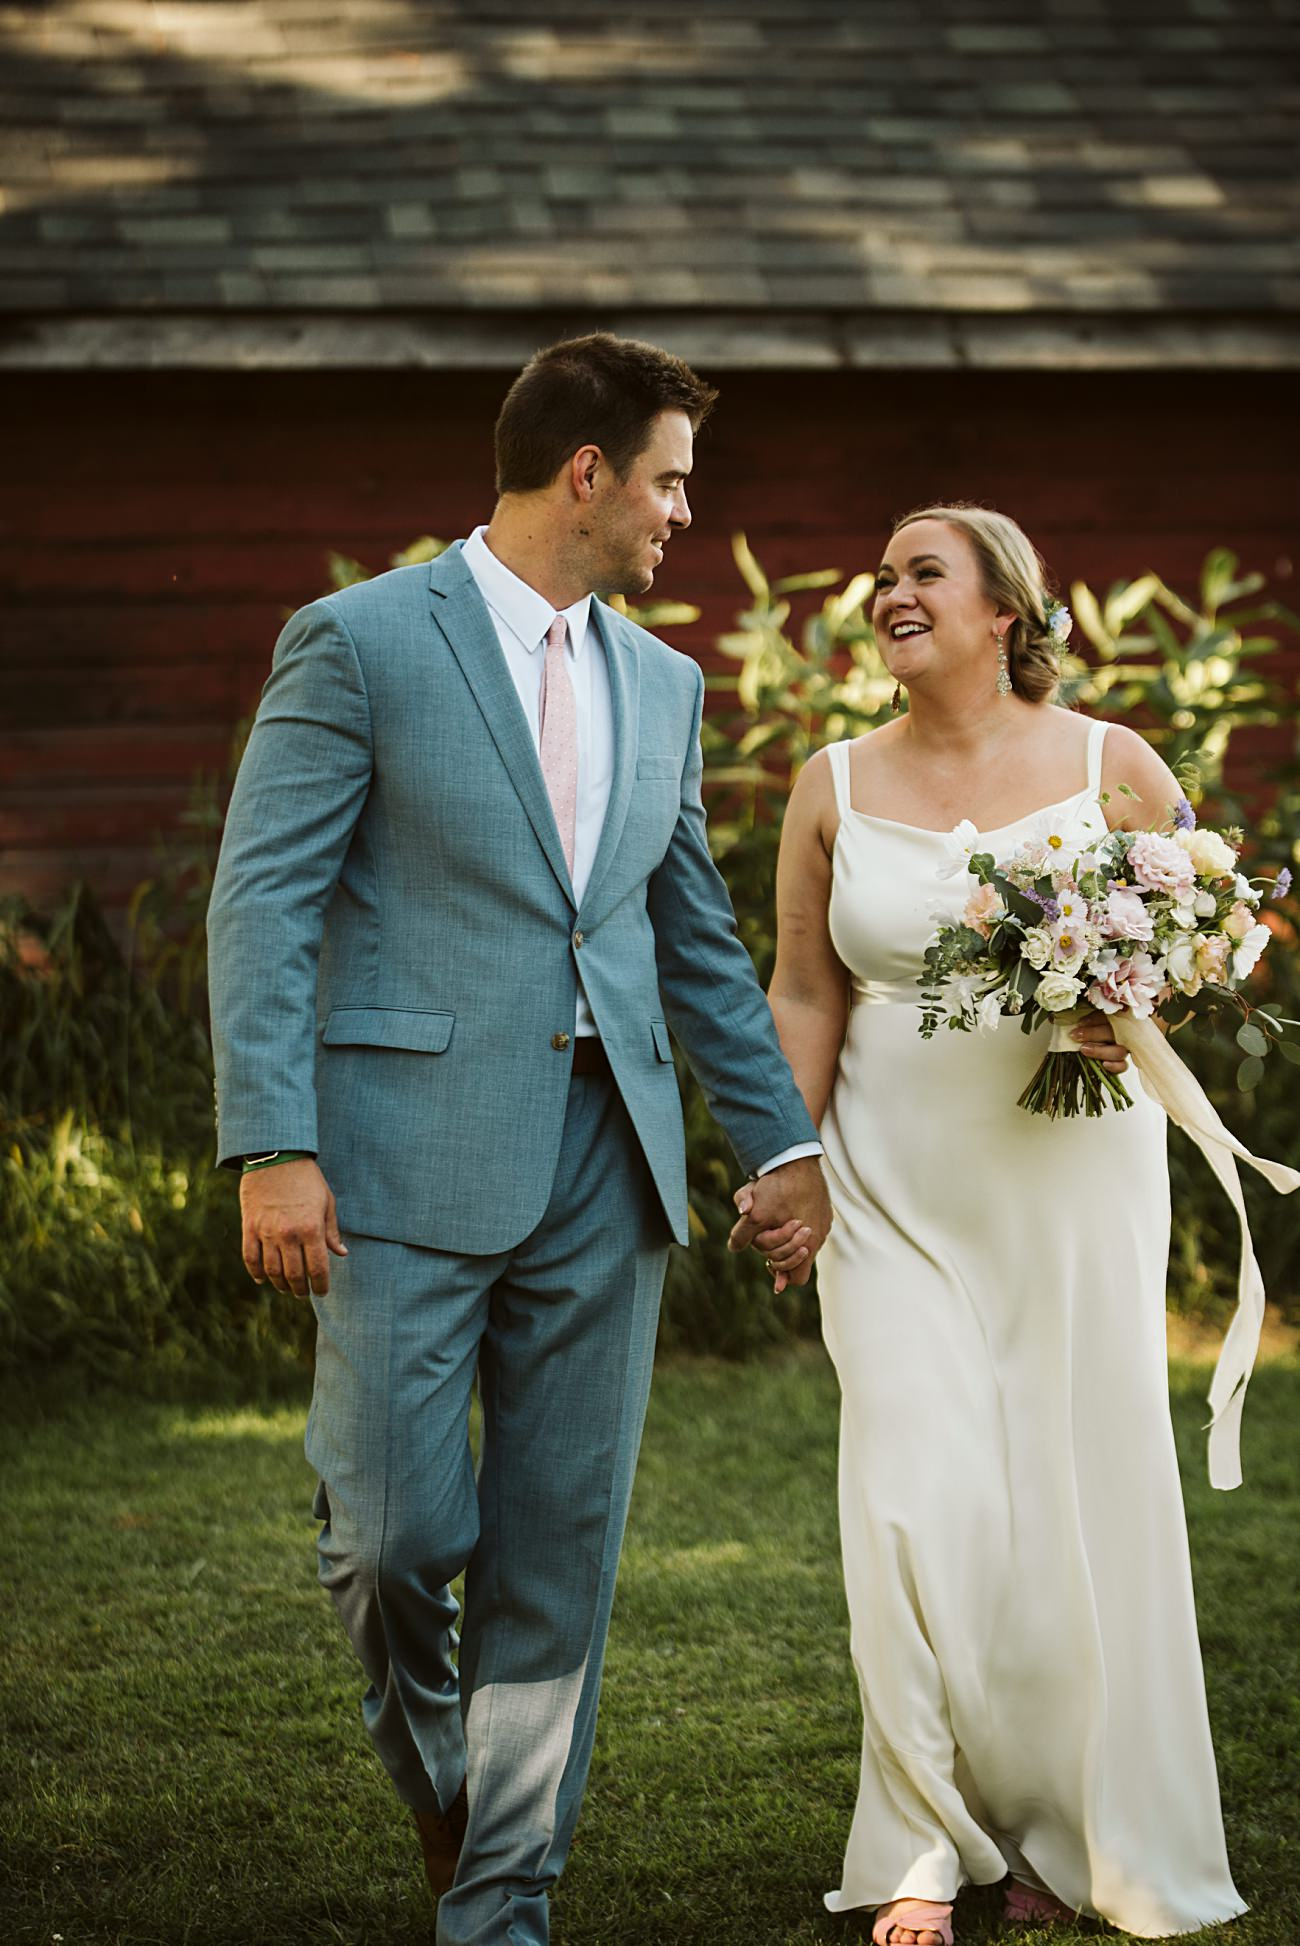 Octagon Barn Wedding near Spring Green Wisconsin, Barn Wedding Inspiration, Bride and Groom Photos